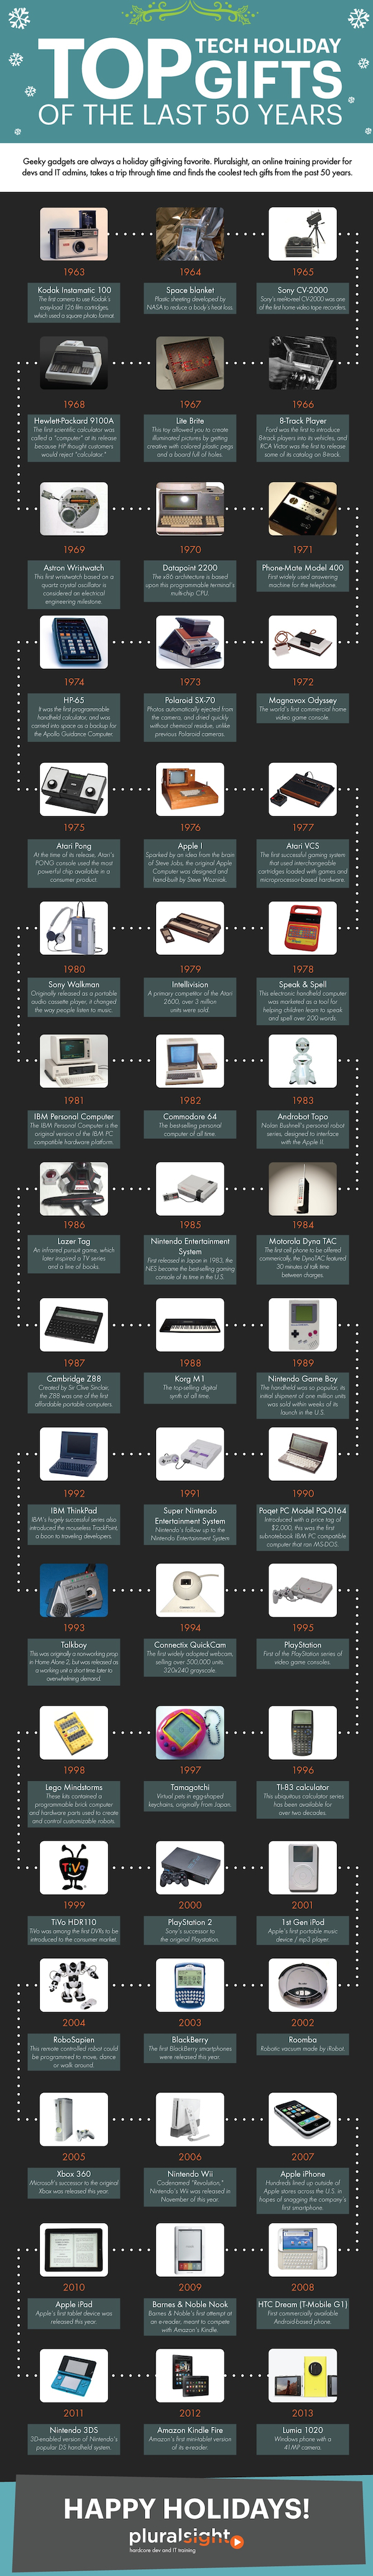 techholidaygifts-infographic